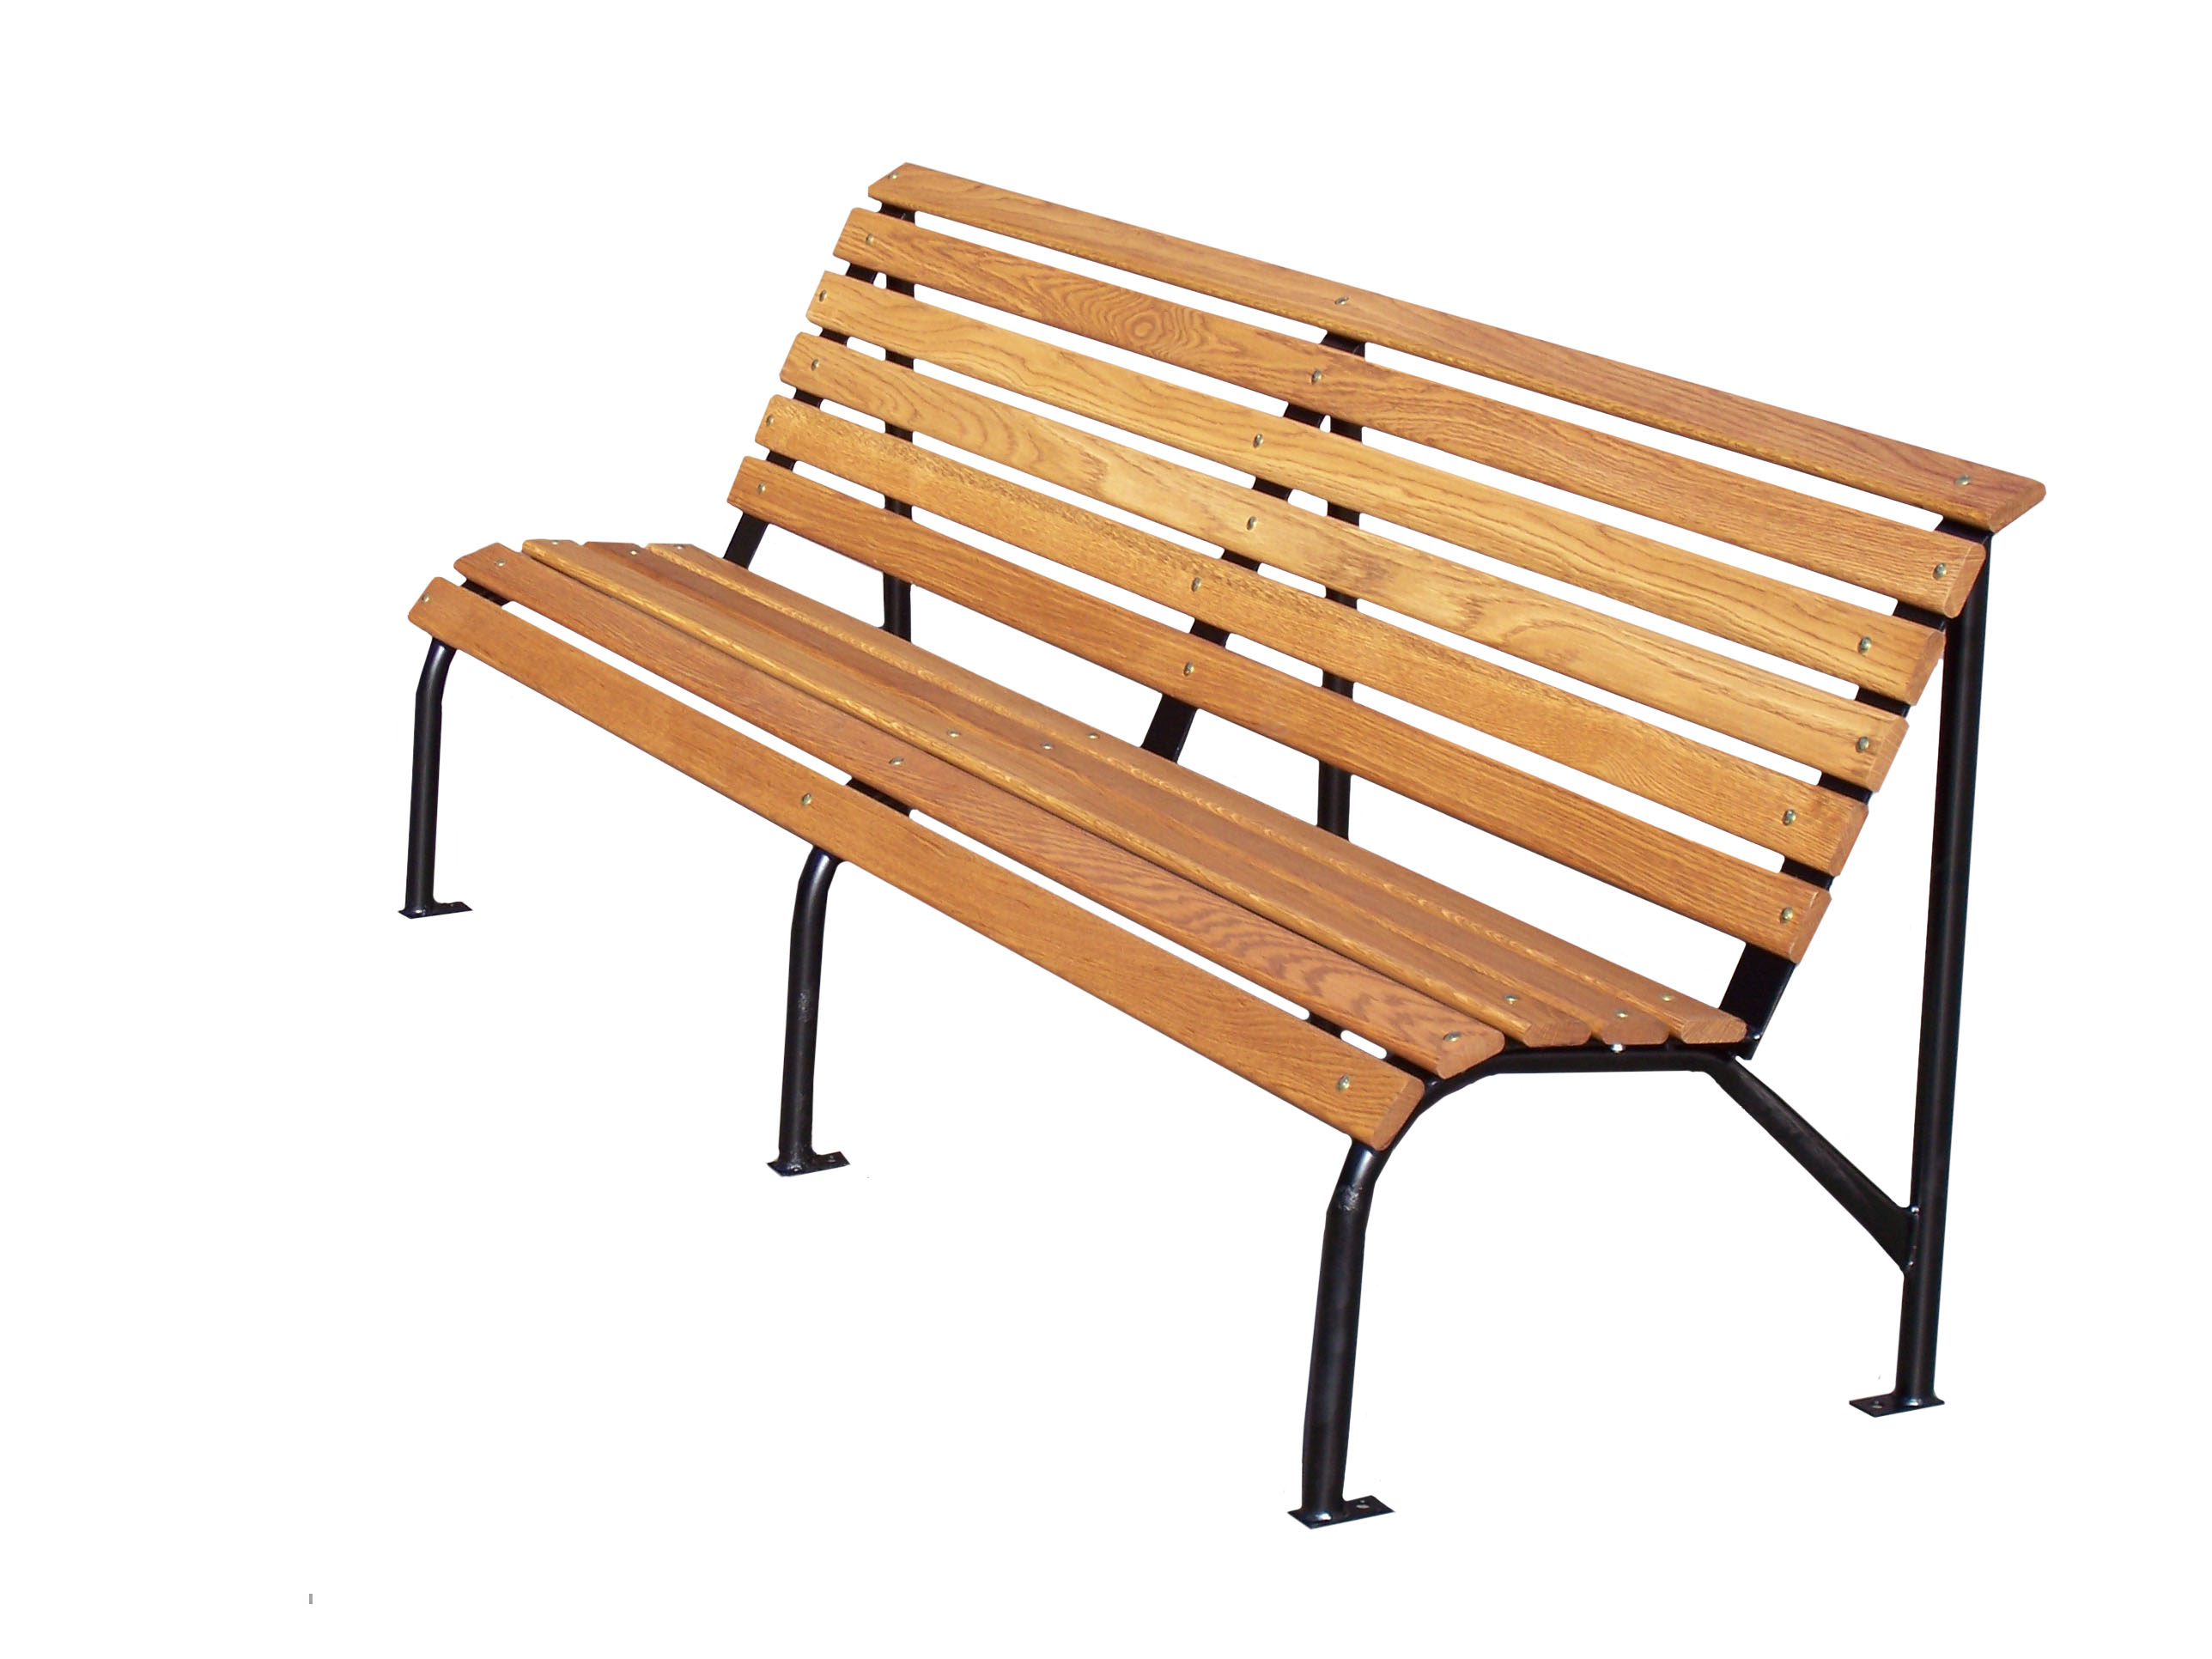 wooden benches | wooden park benches | outdoor wooden benches